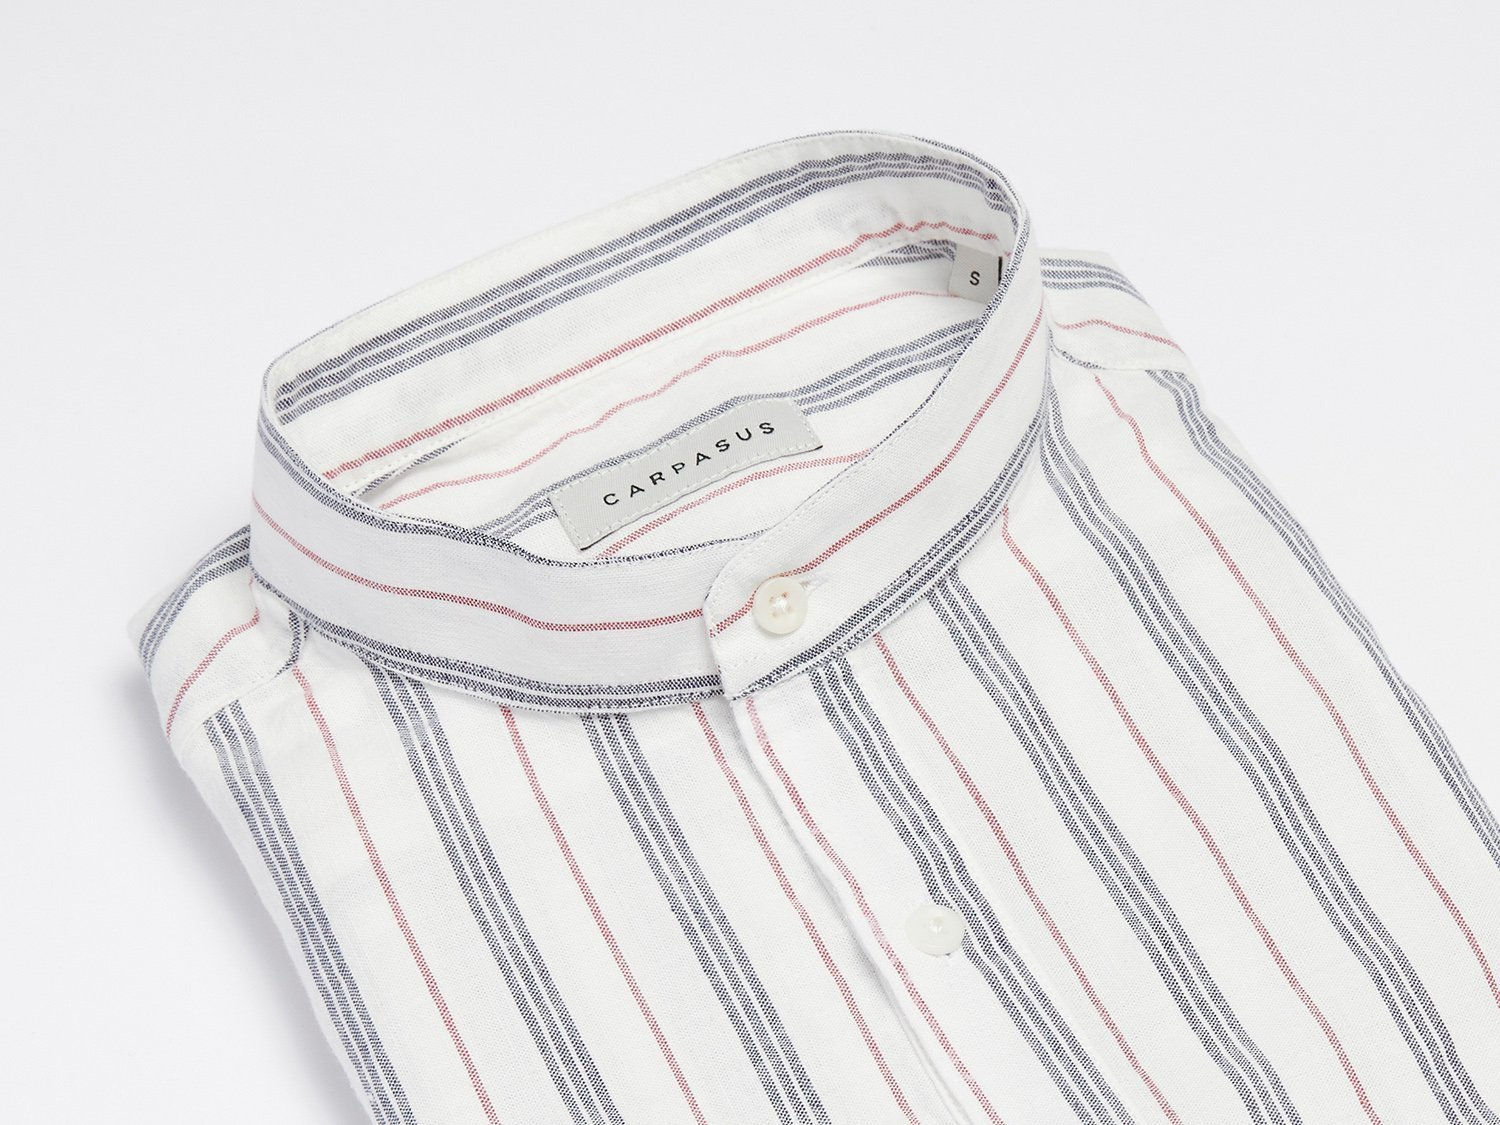 carpasus sustainable organic cotton shirt marzili tricolor blue white red. Nachhaltiges Carpasus Hemd Marzili Tricolor Blau Weiss Rot aus Bio Baumwolle